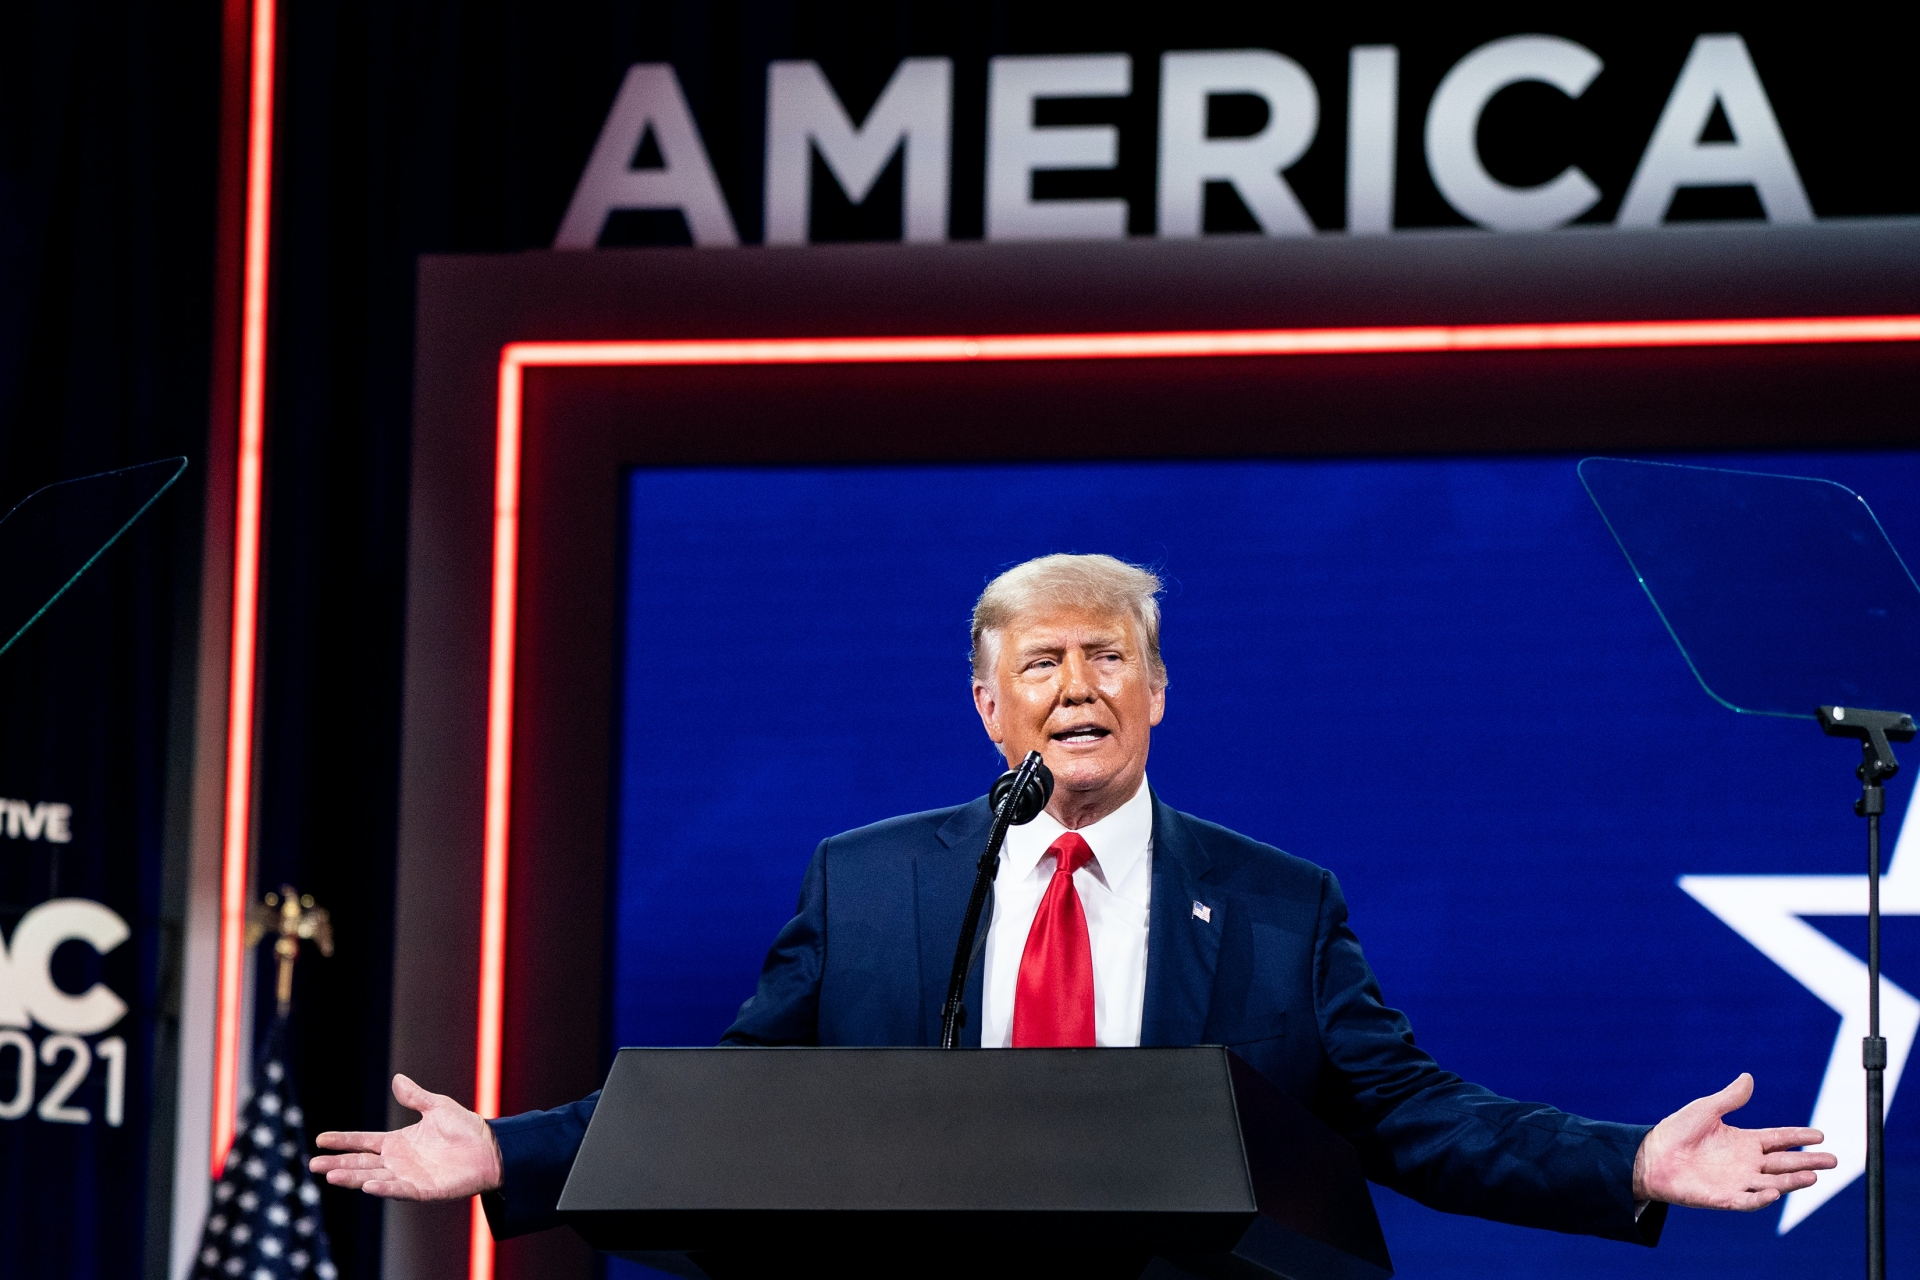 World breaking news today (April 12): Trump said the key to Republican success is more Trumpism